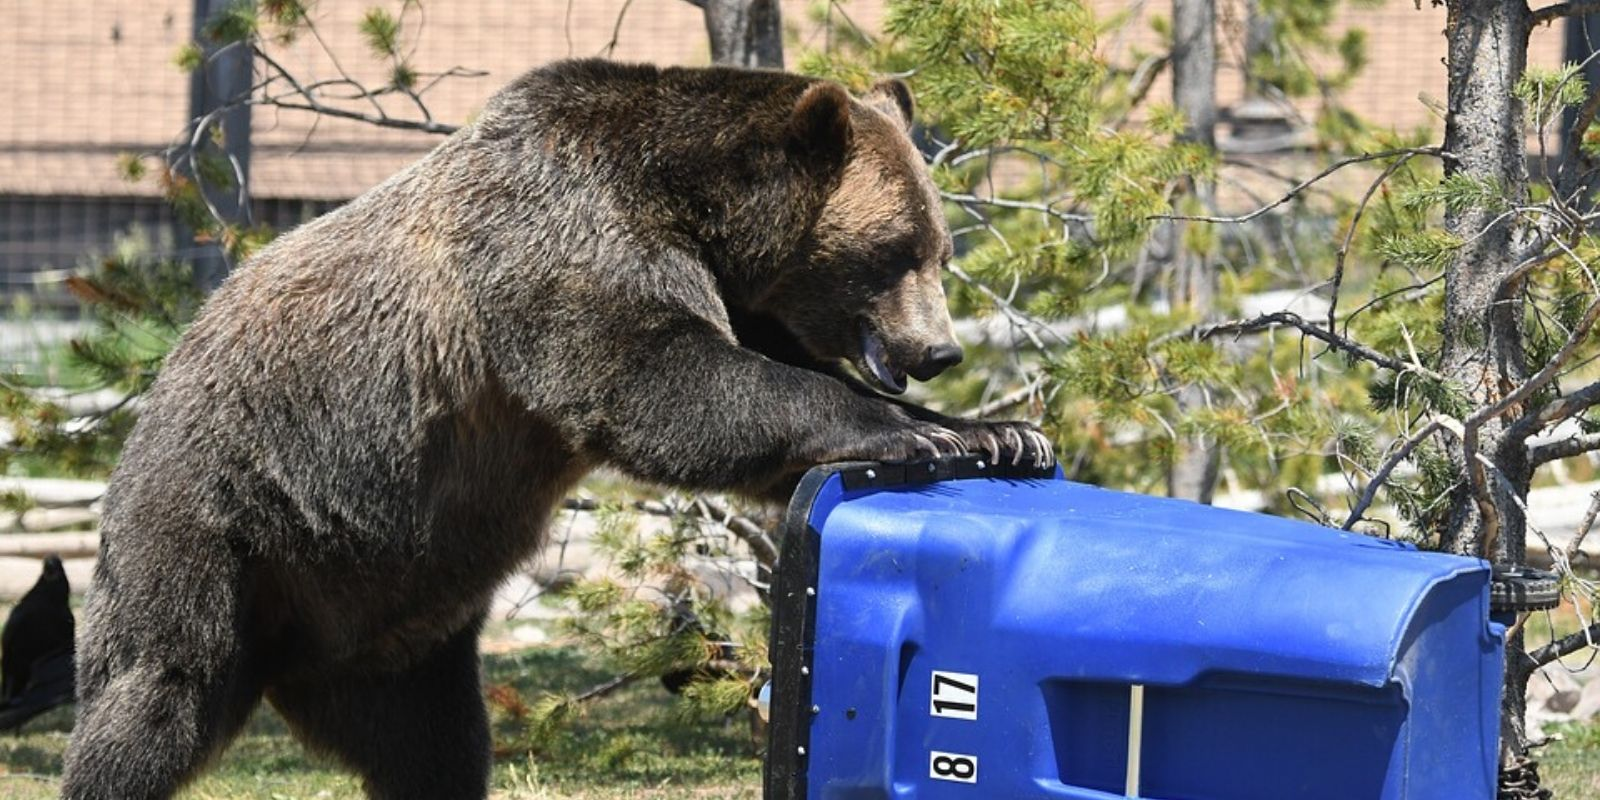 Five bears euthanized after residents see them eating garbage